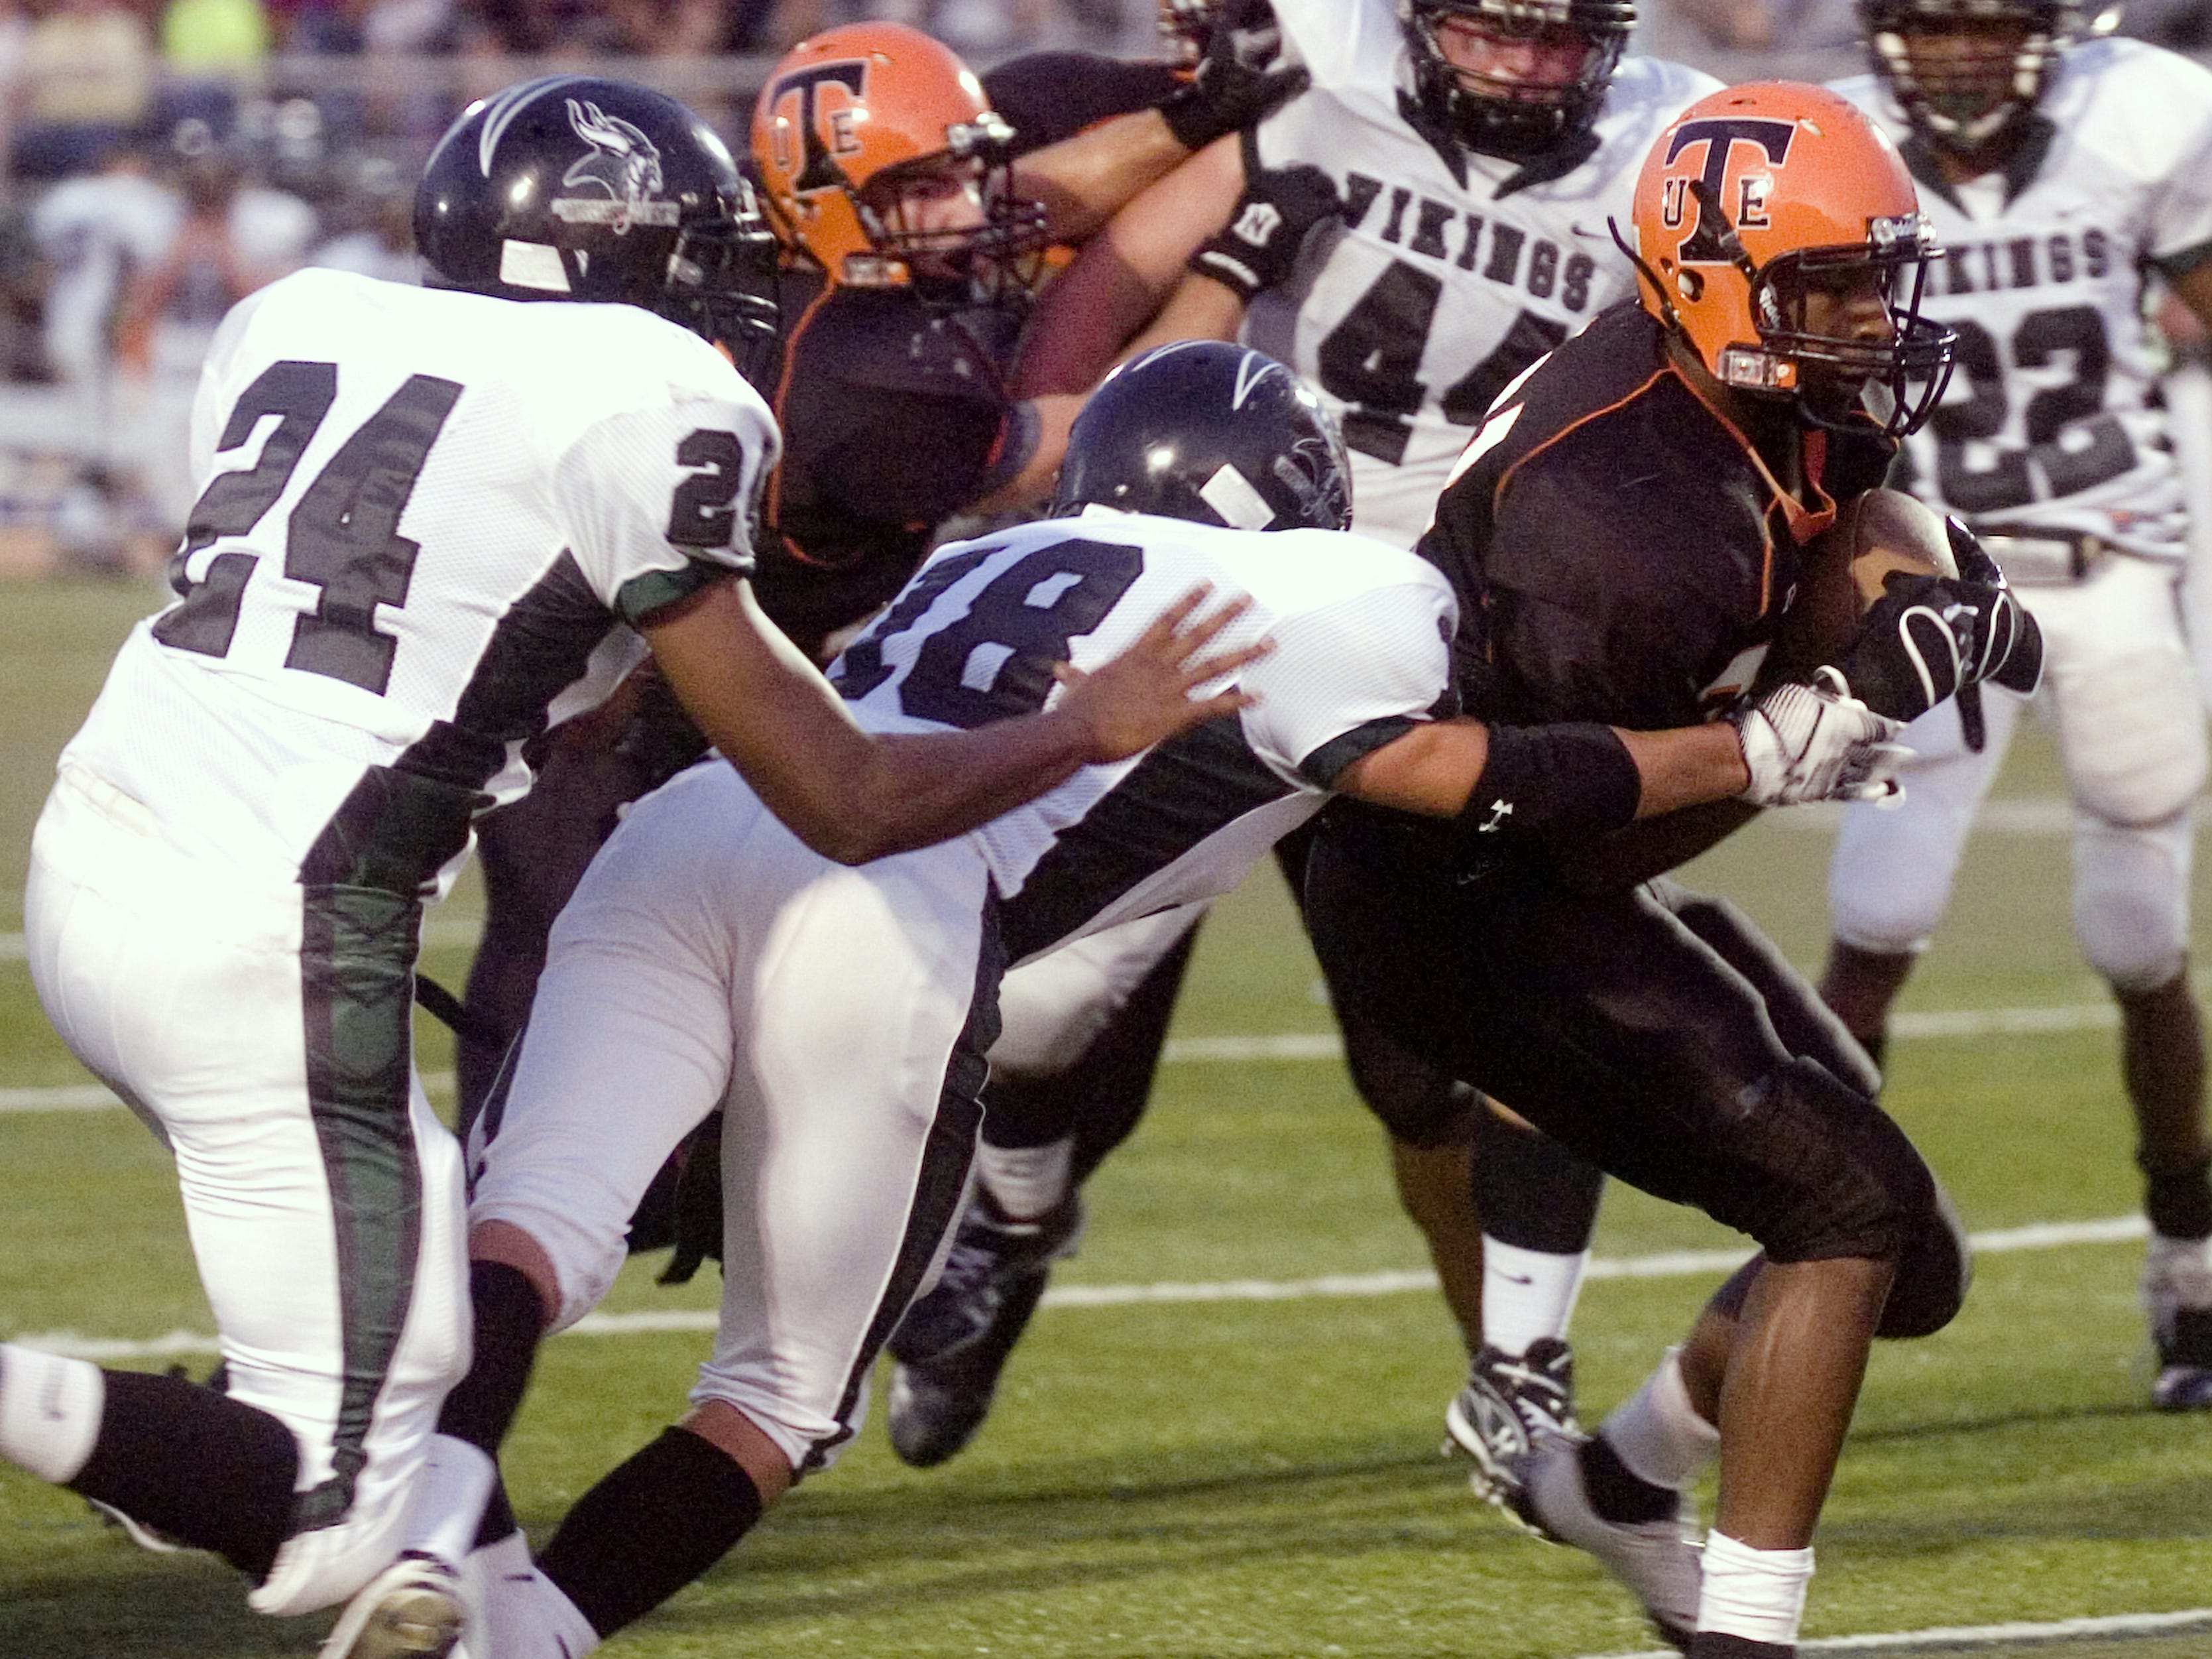 Union-Endicott's Jordan Thomas, right, runs into the end zone past Corning West defenders Devin King, left, and Alex Perry in the second quarter in 2009 at Ty Cobb Stadium.